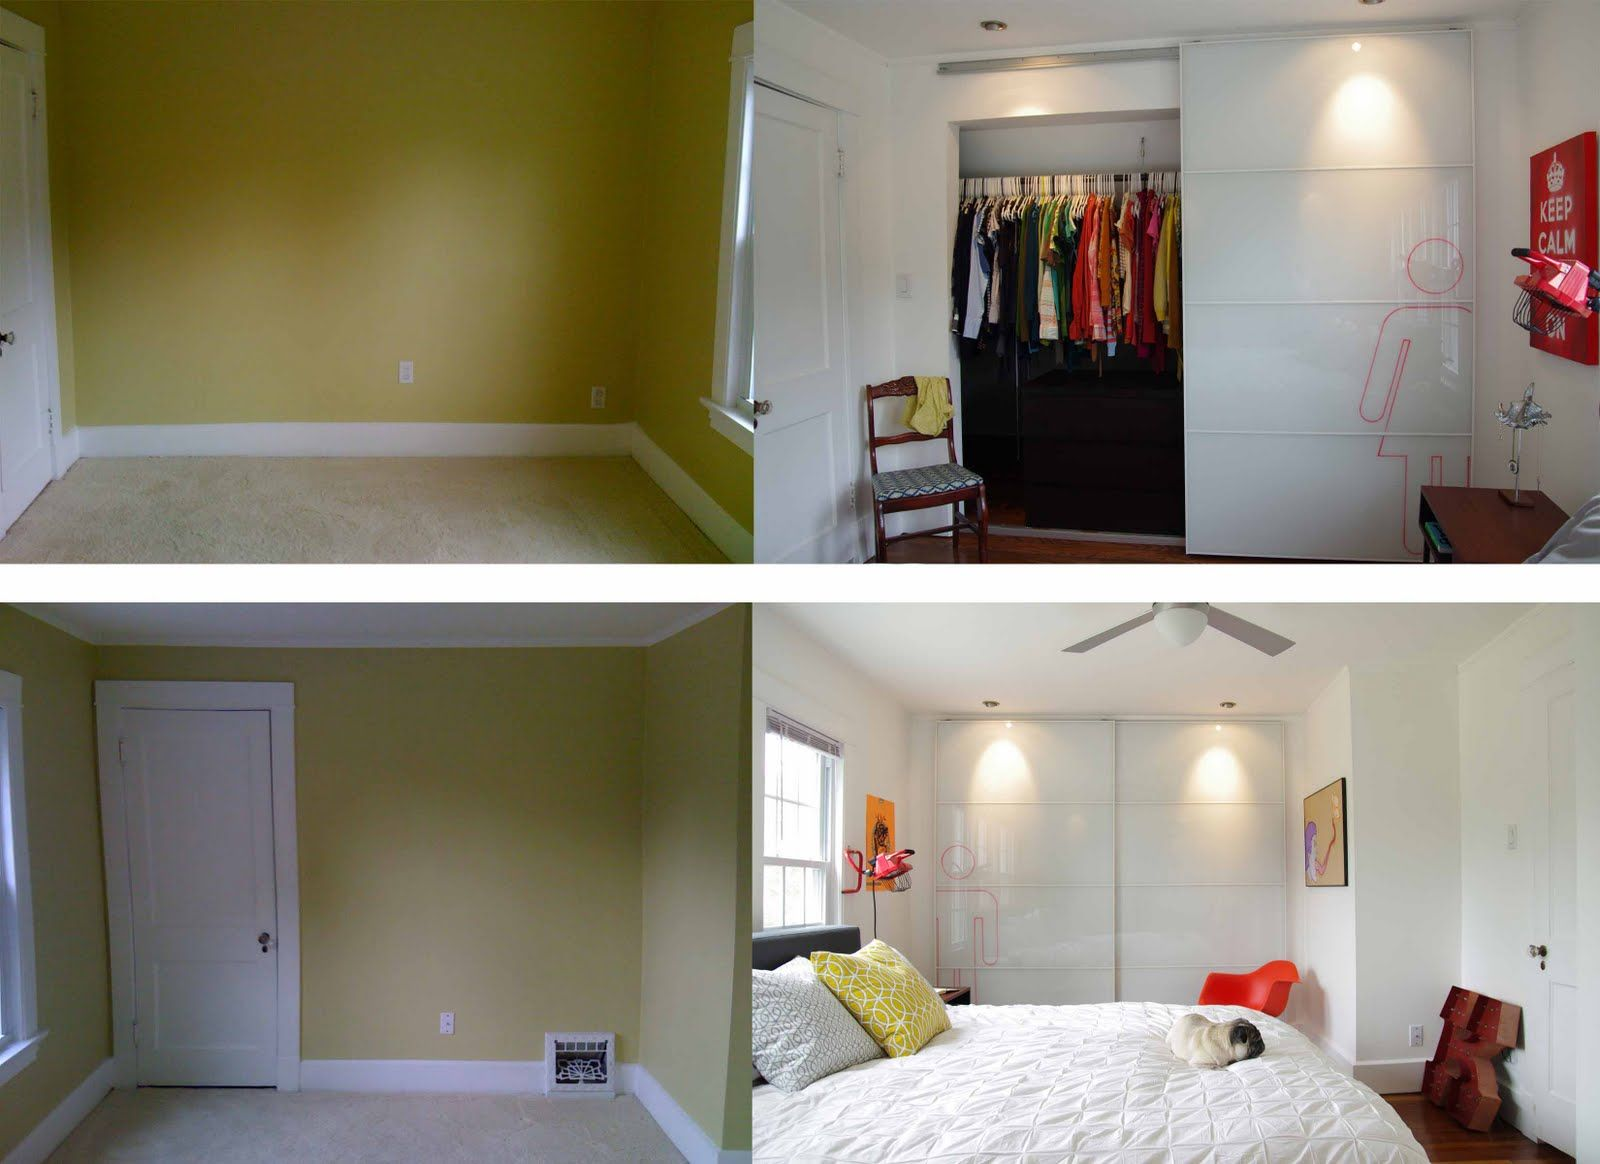 Ikea Hackers Pax Hack His And Her Closets With Pax Tonnes Sliding Doors Dream Closet Design Closet Design Dream Closets